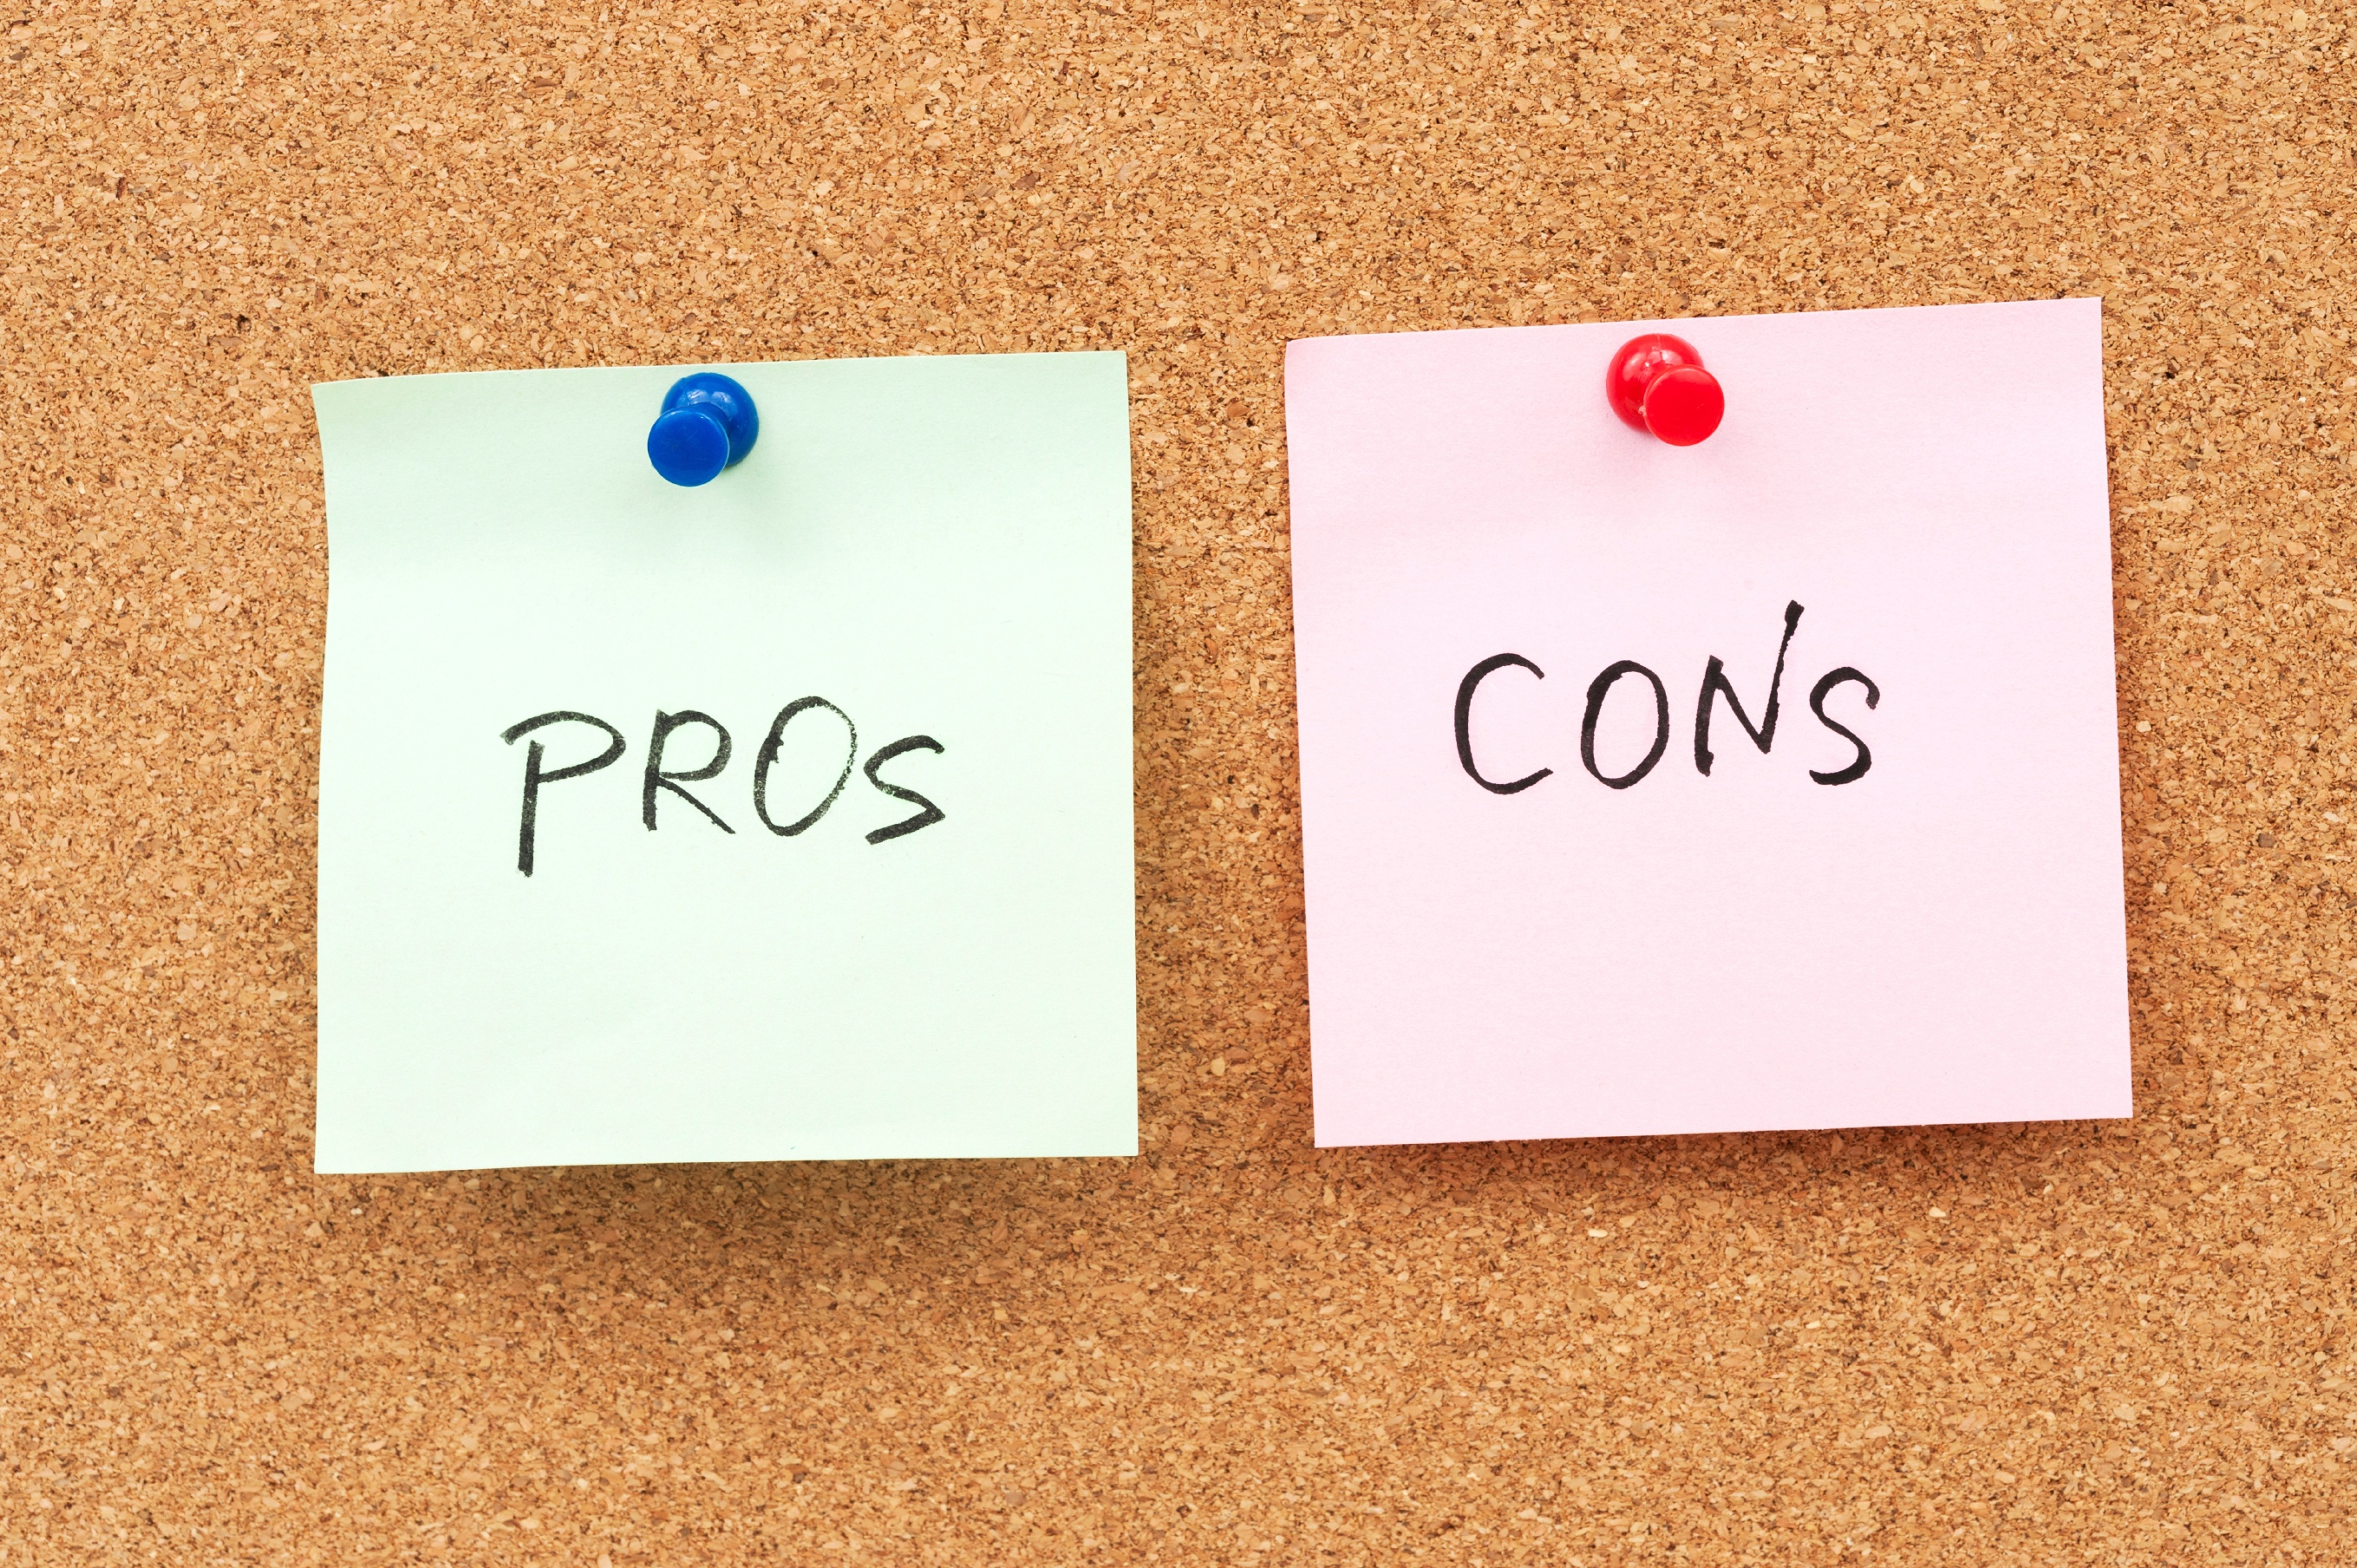 The pros and cons of omni-channel marketing